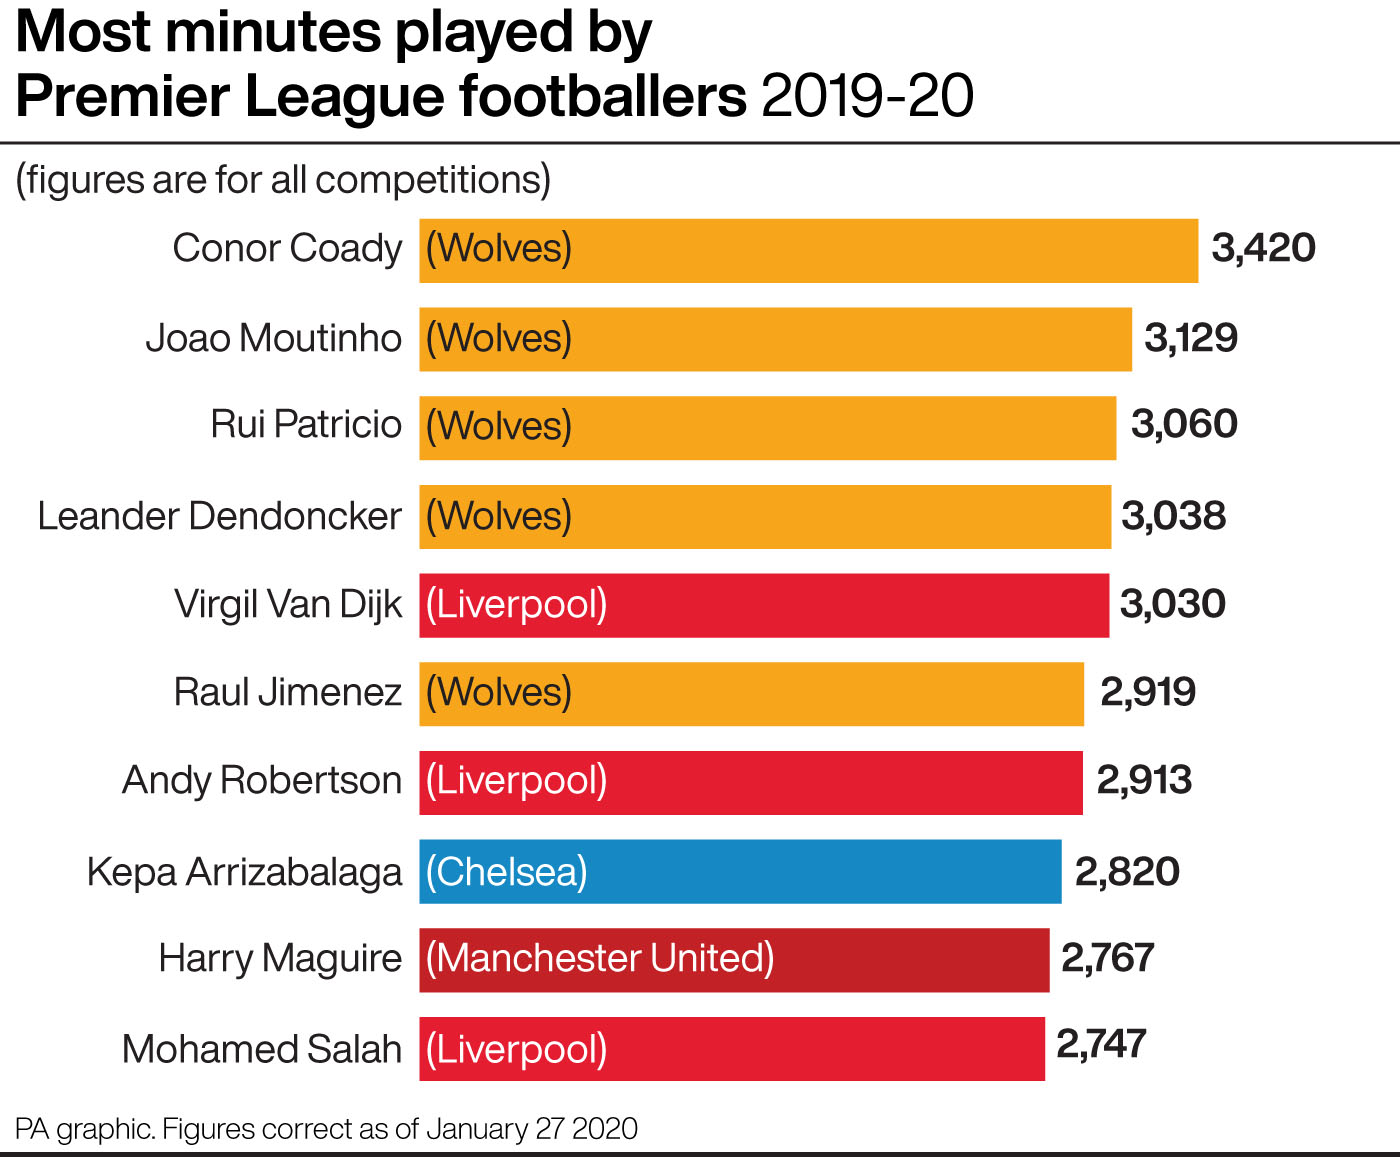 Most minutes played by Premier League players in 2019-20